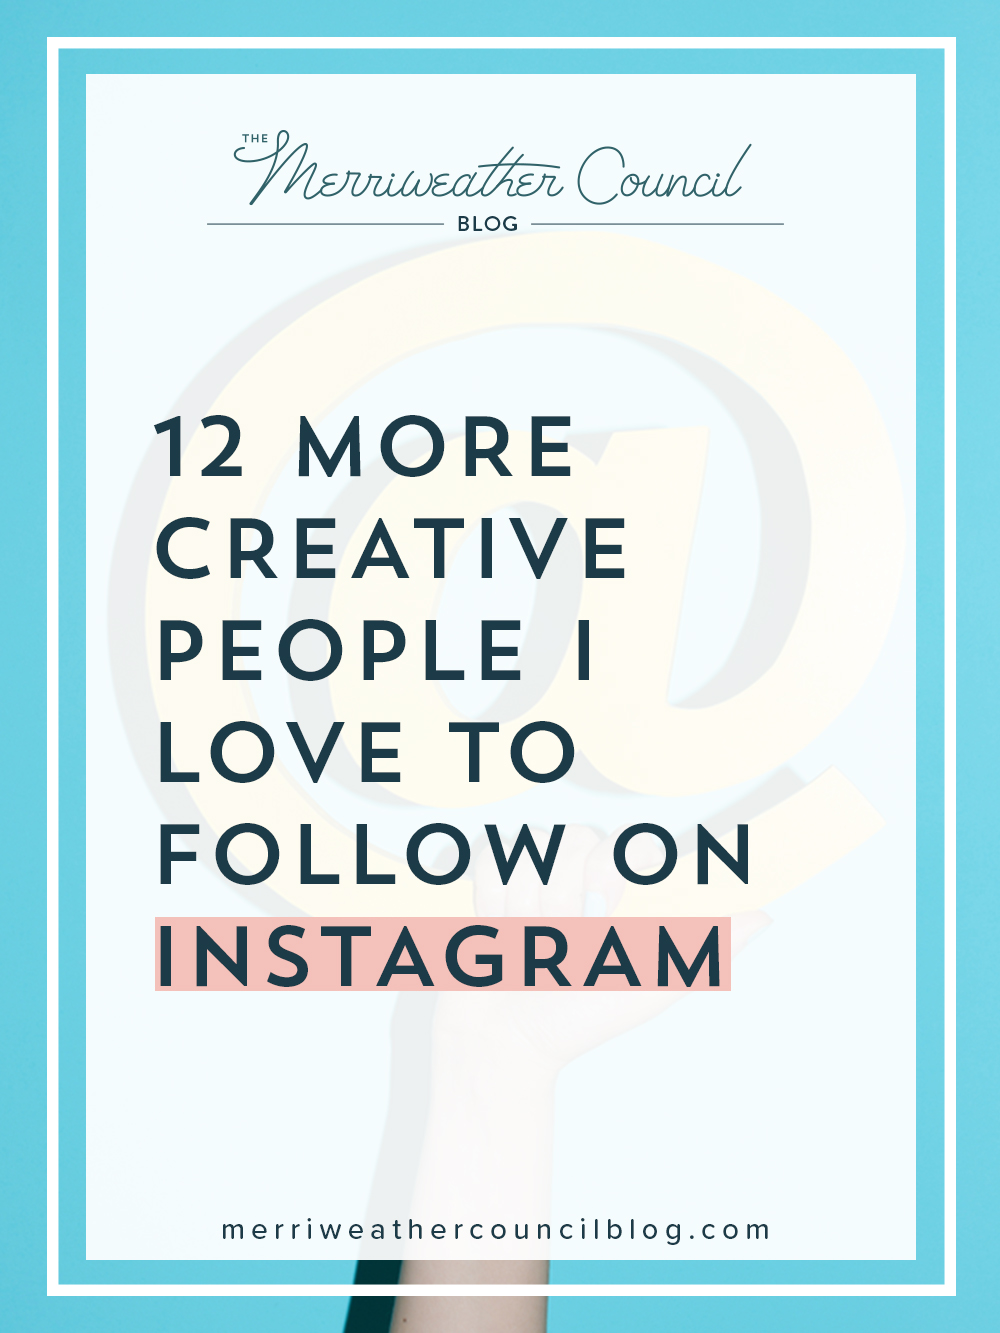 12 more creative people I love to follow on Instagram | the merriweather council blog